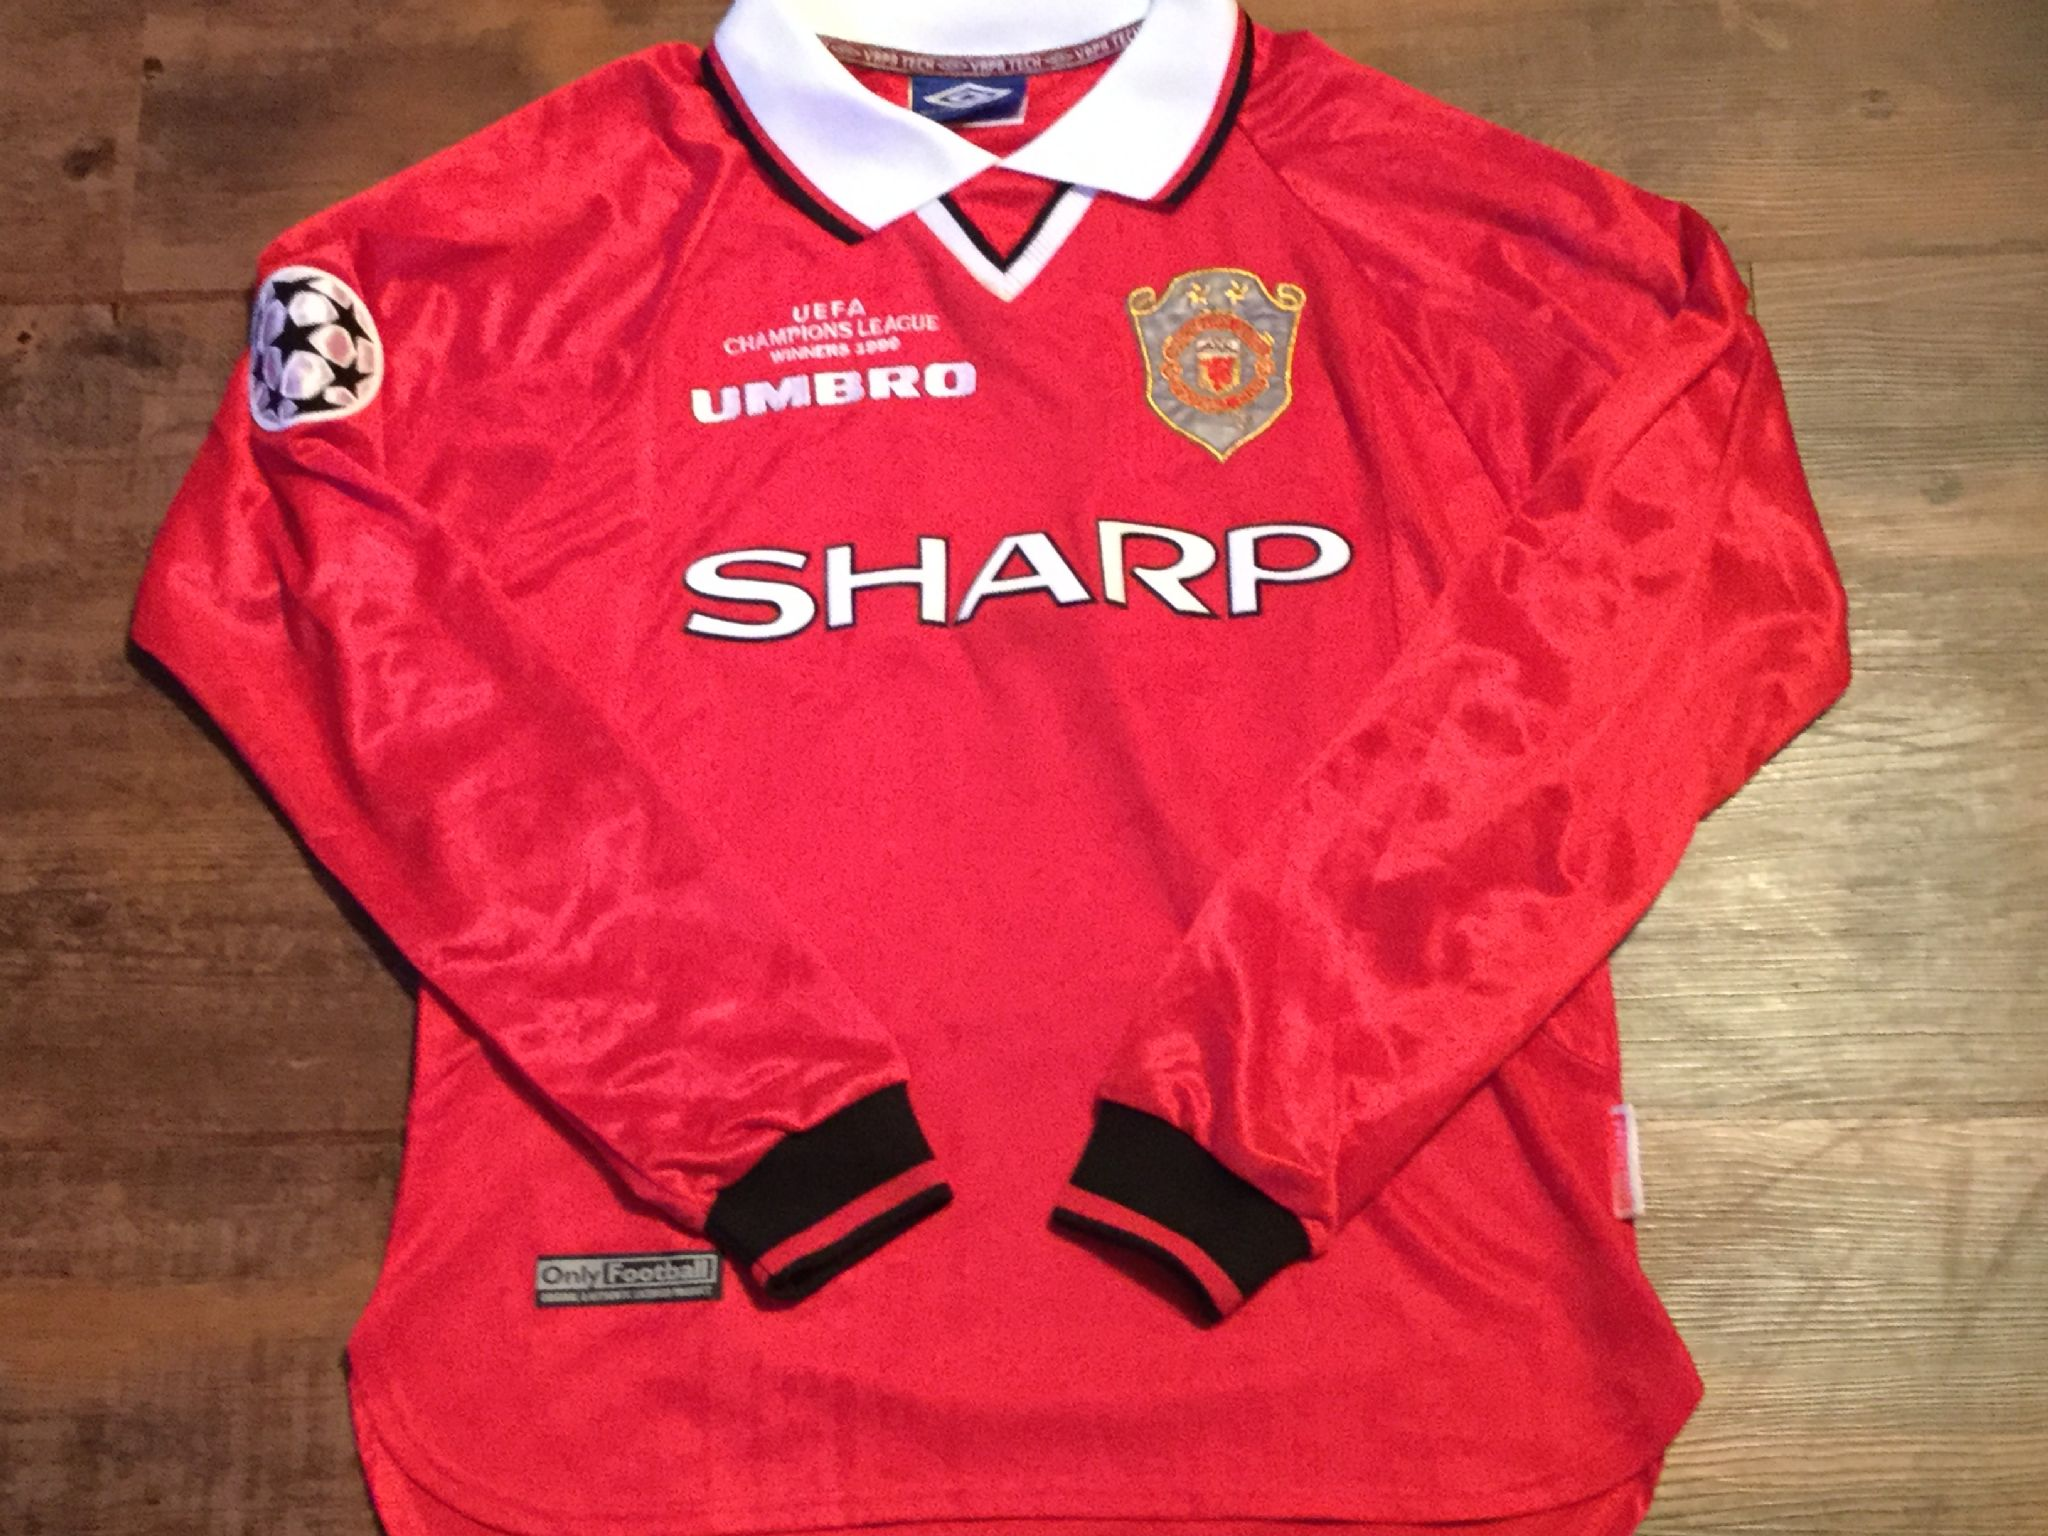 detailed look 5b524 dd6dd Global Classic Football Shirts | 1999 Manchester United ...